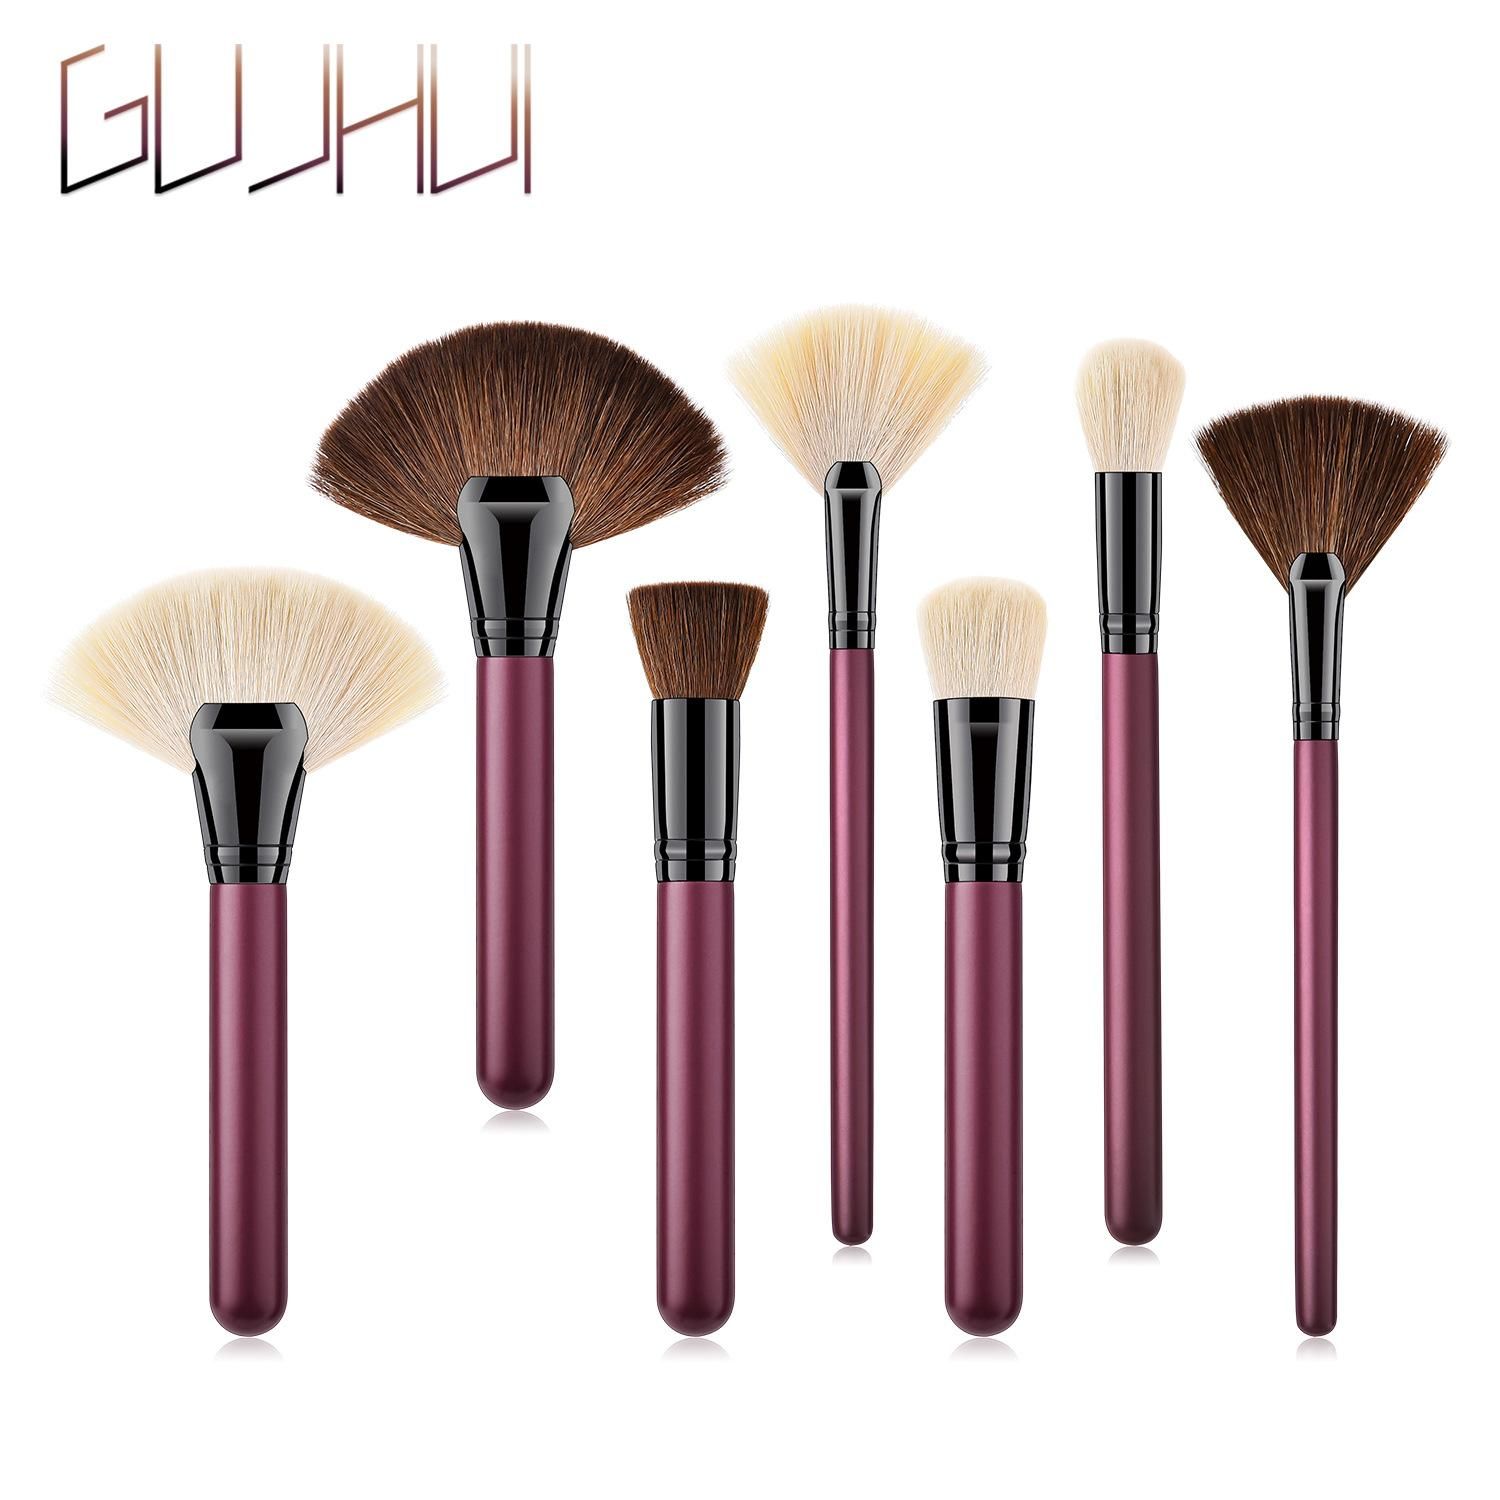 7-Brushes Complete Set - Quality Goat Hair Bronzer Cheek Cream Foundation Eyeshadow Concealer Lip Blending Makeup Brushes Beauty Tools